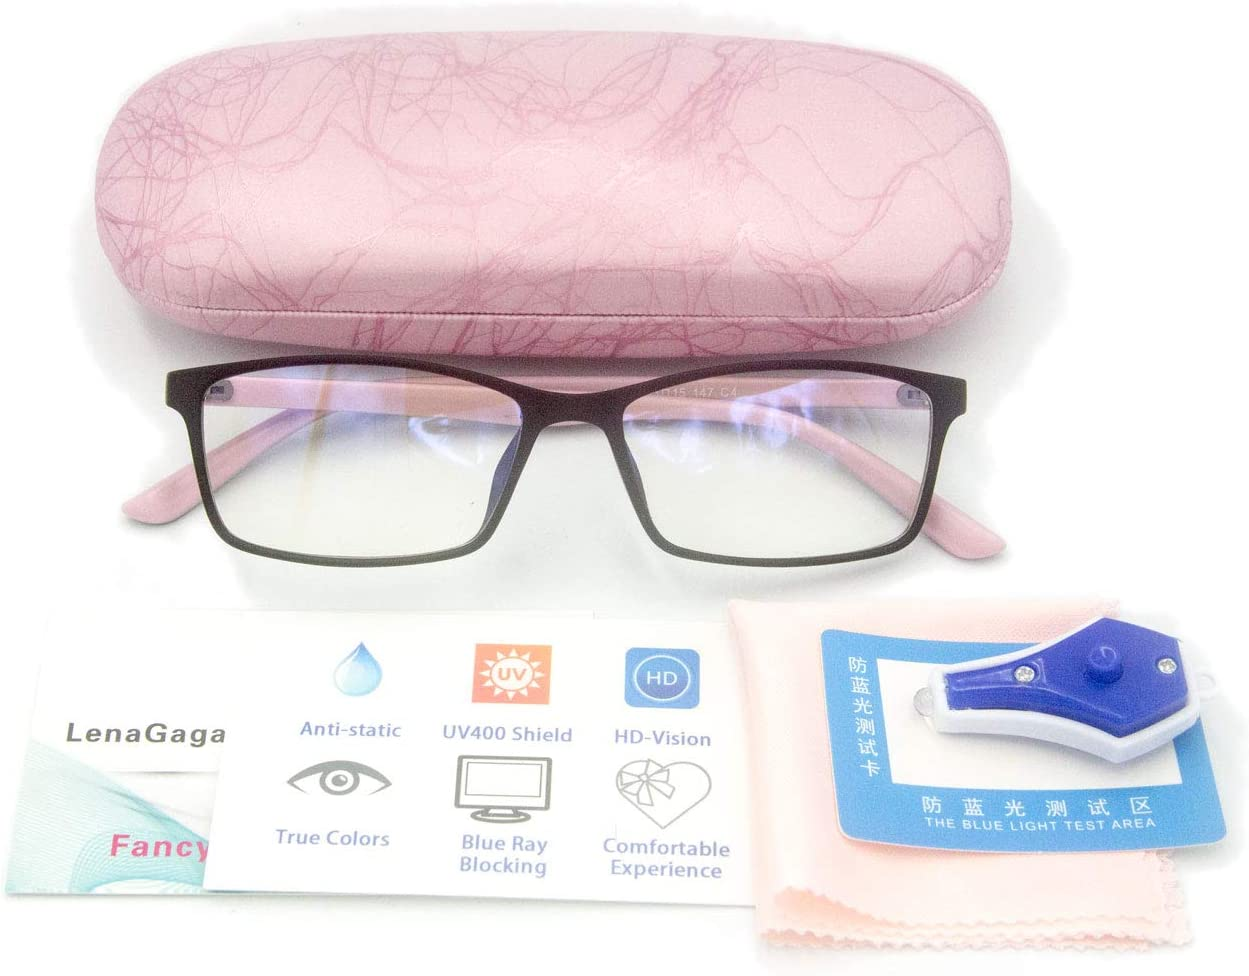 Women Anti Blue Light Glasses Block Eye Strain Glare with Case Tester, Gaming Computer Glasses Blue Light Block Glasses Filter UV Blocker Clear Lens Small Face Narrow Rectangle Nerd Frame Pink Black: Computers & Accessories